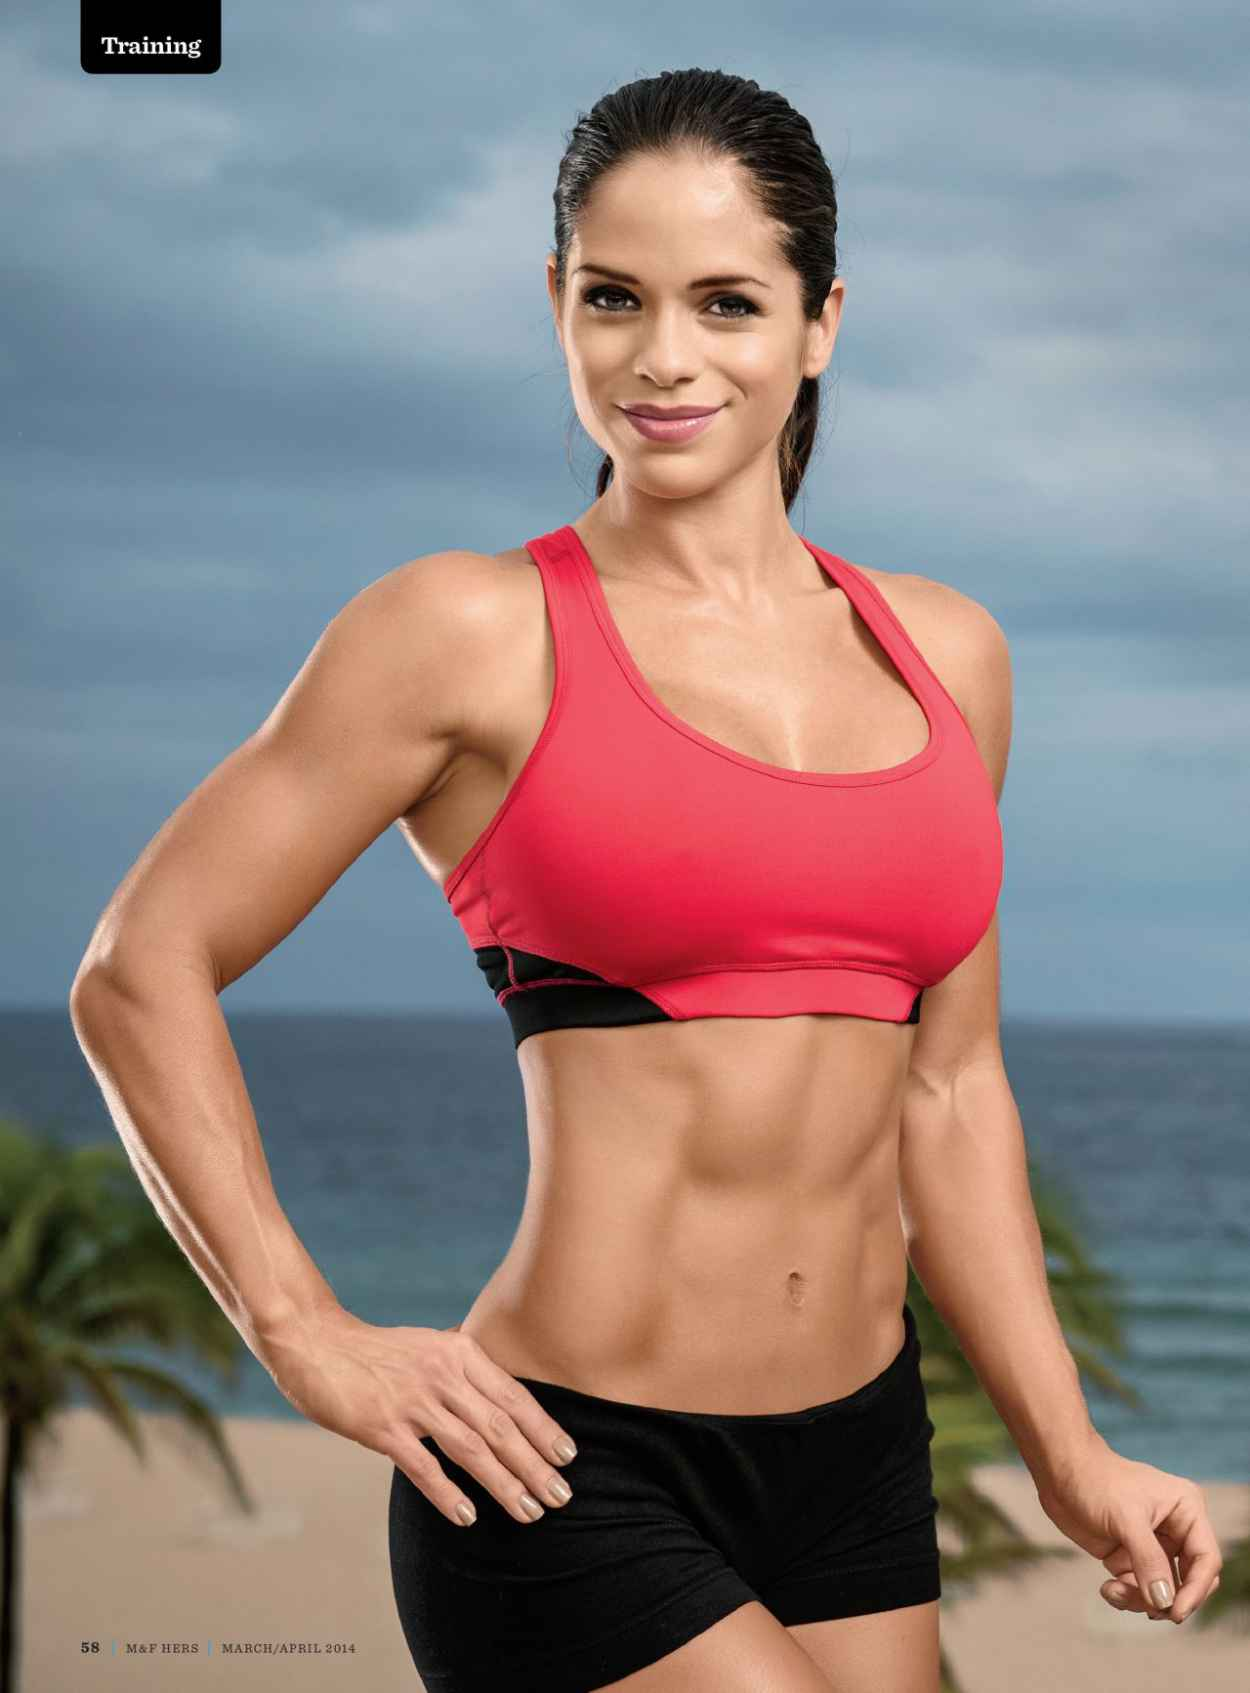 Michelle Lewin - Muscle Fitness Hers Magazine - March/April 2015 Issue-1